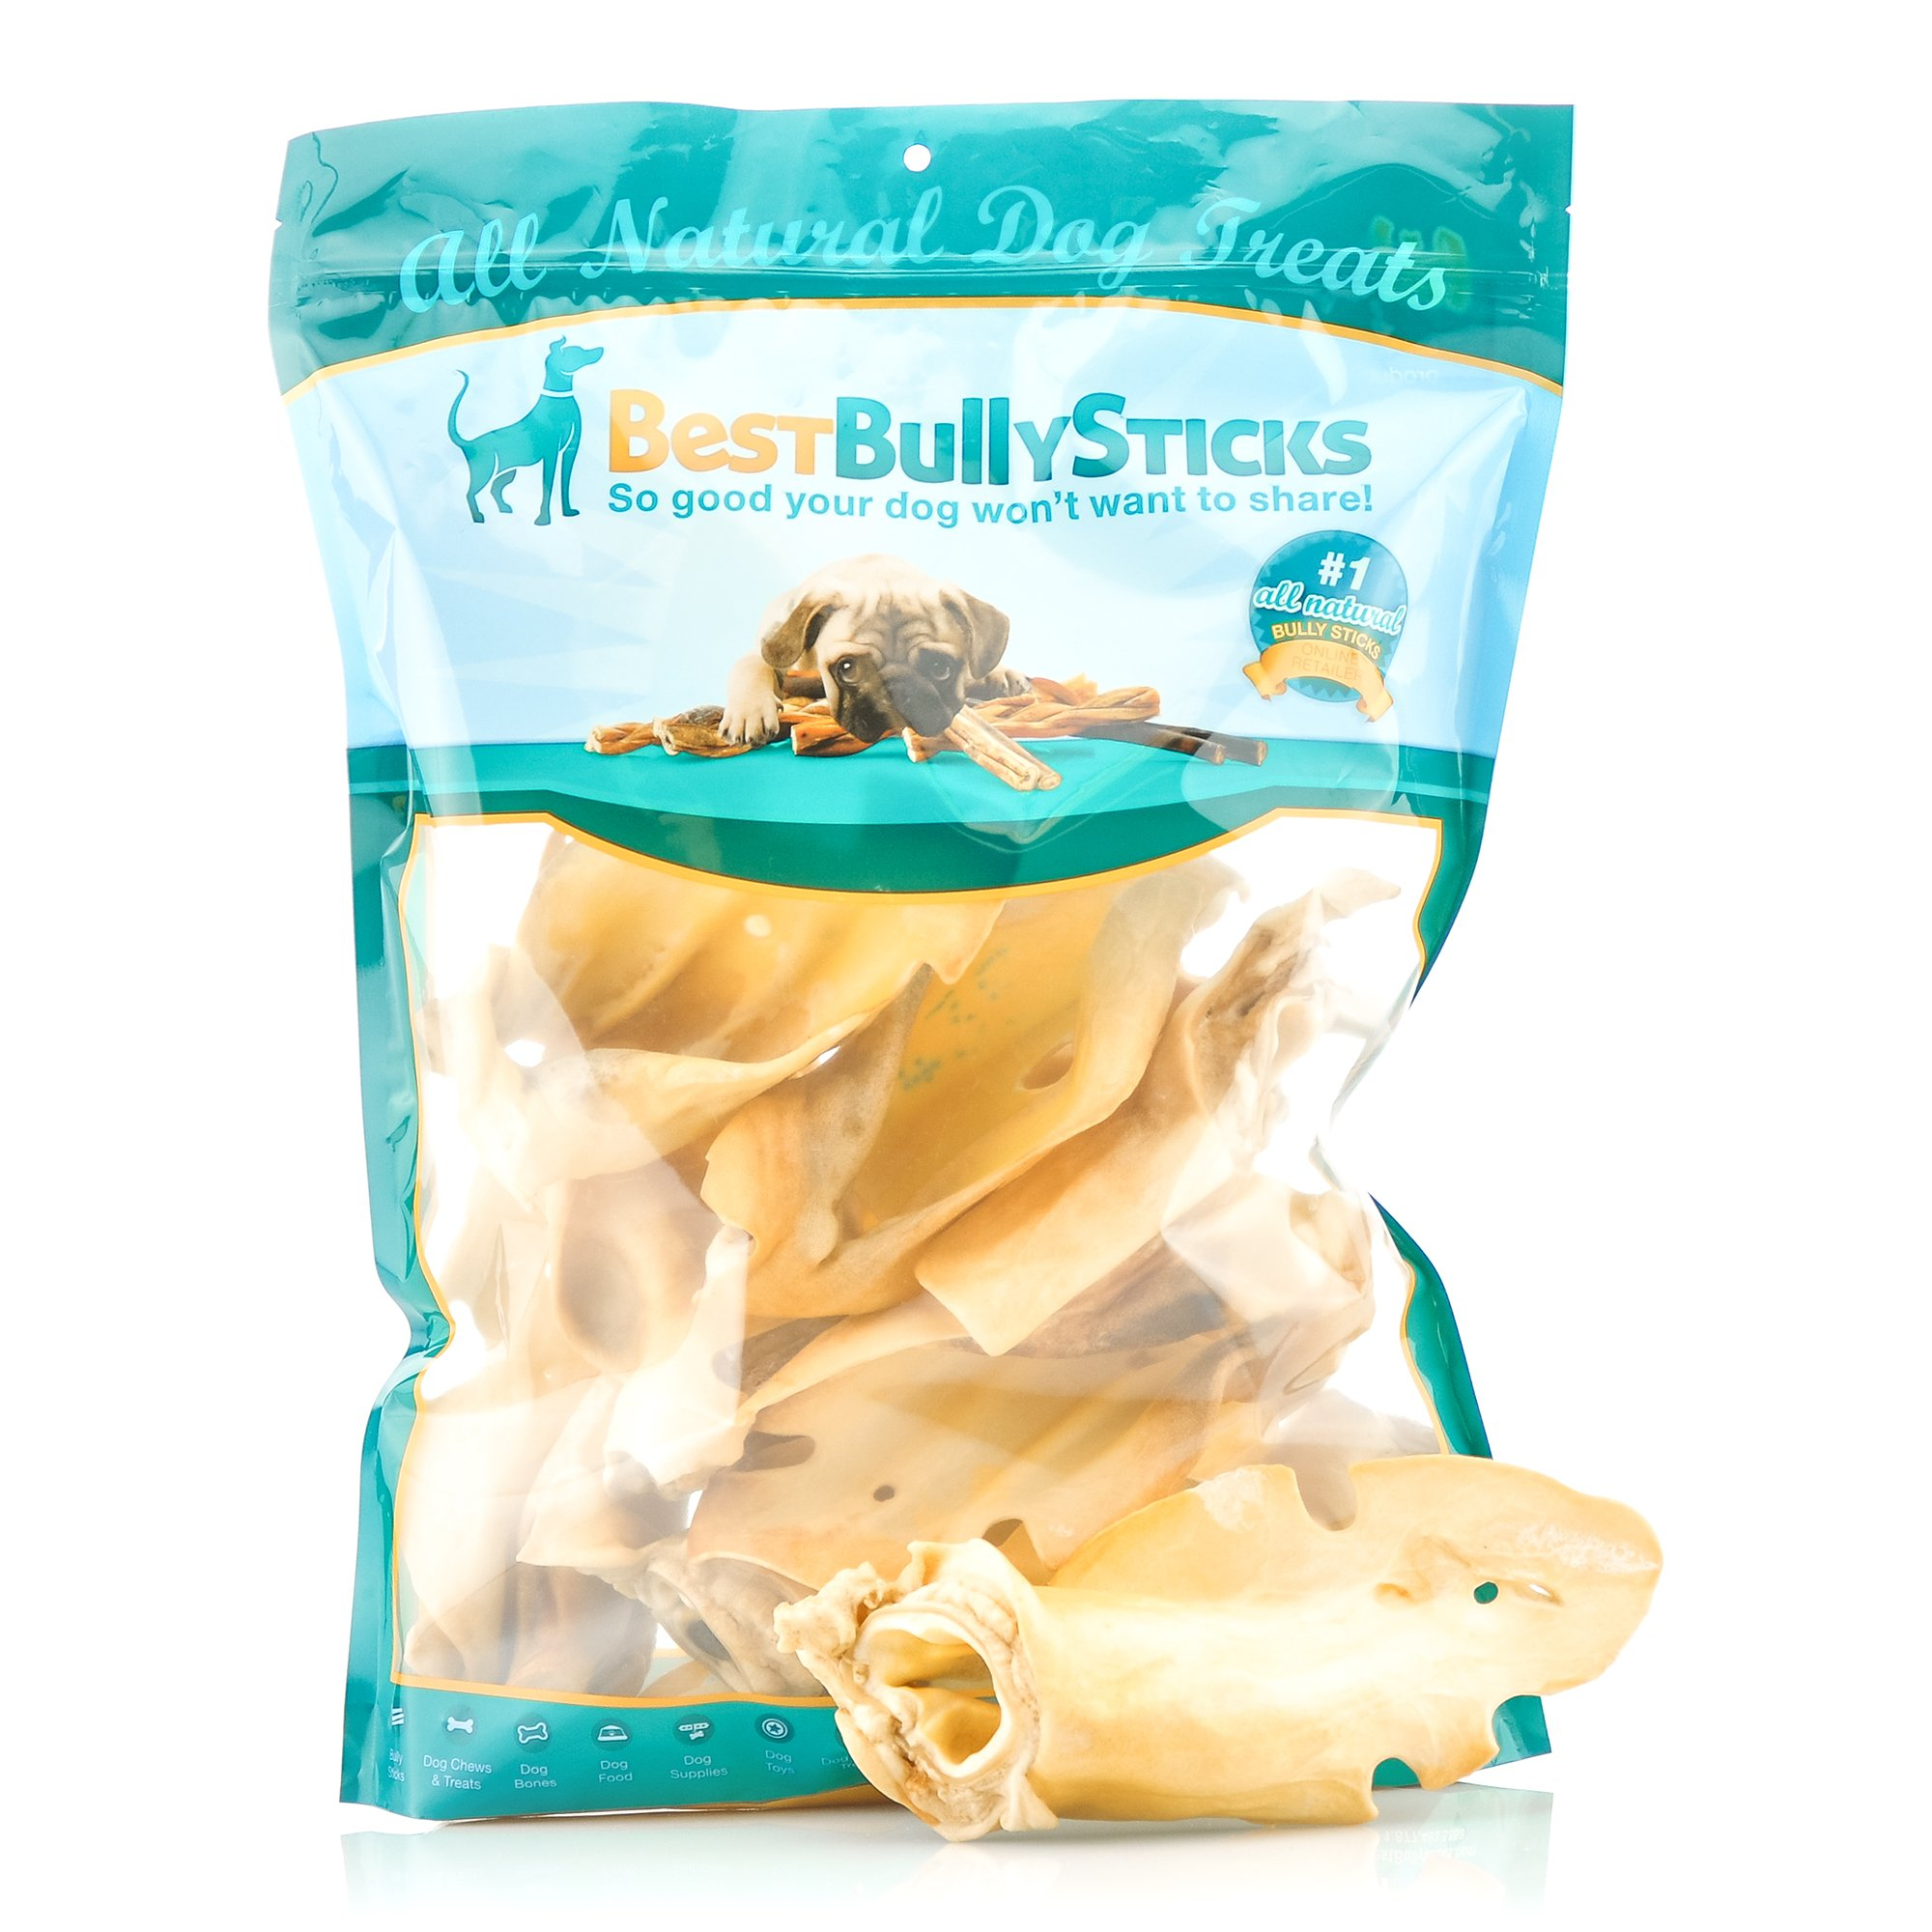 Best Bully Sticks Prime Thick-Cut Cow Ear Dog Chews by (12 Pack) Sourced From All Natural, Free Range Grass Fed Cattle with No Hormones, Additives or Chemicals - Hand-Inspected and USDA/FDA Approved by Best Bully Sticks (Image #1)